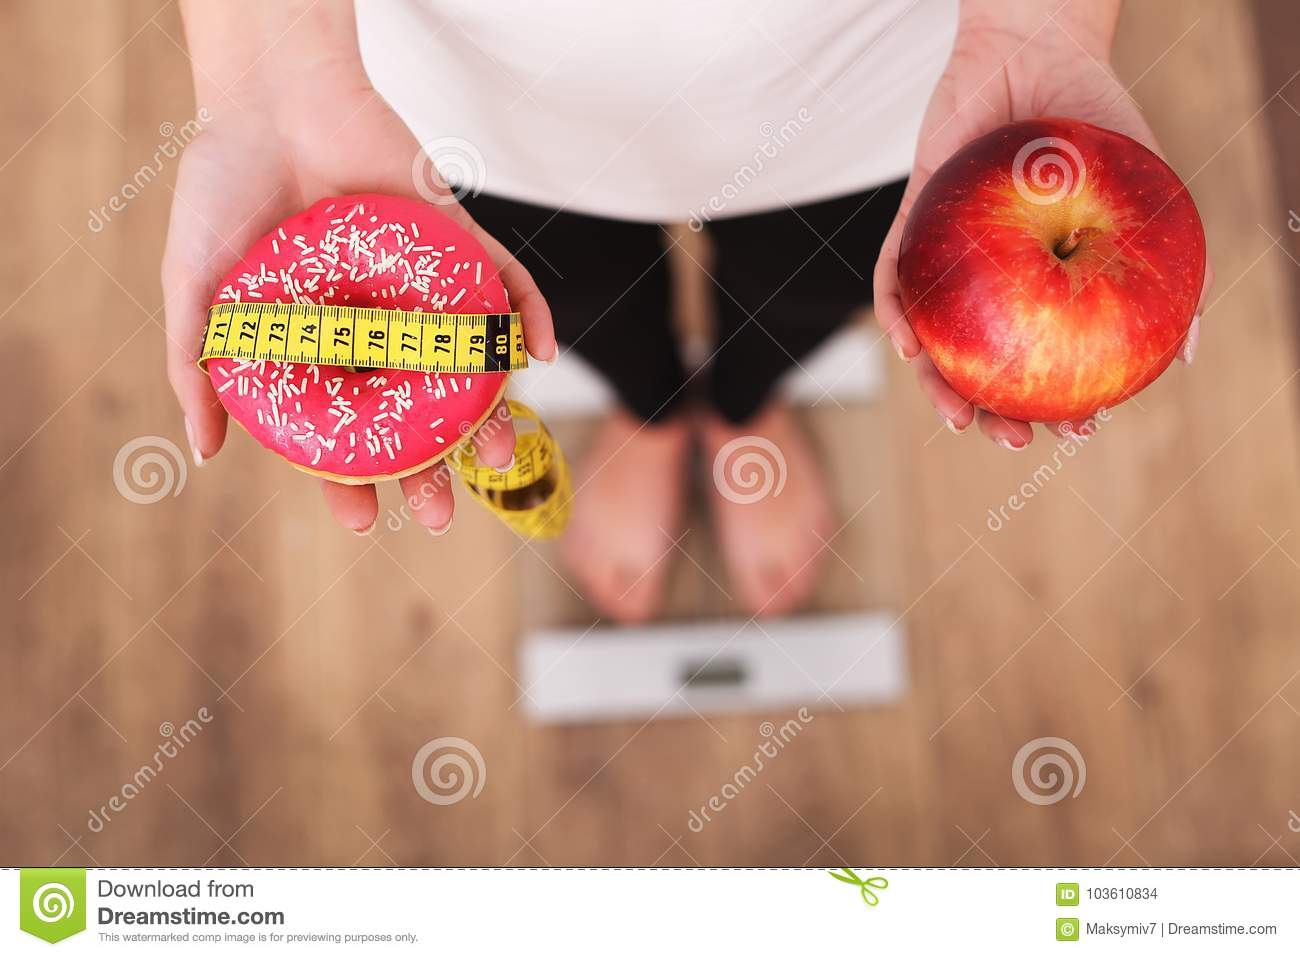 Diet. Woman Measuring Body Weight On Weighing Scale Holding Donut and apple. Sweets Are Unhealthy Junk Food. Dieting, Healthy Eati